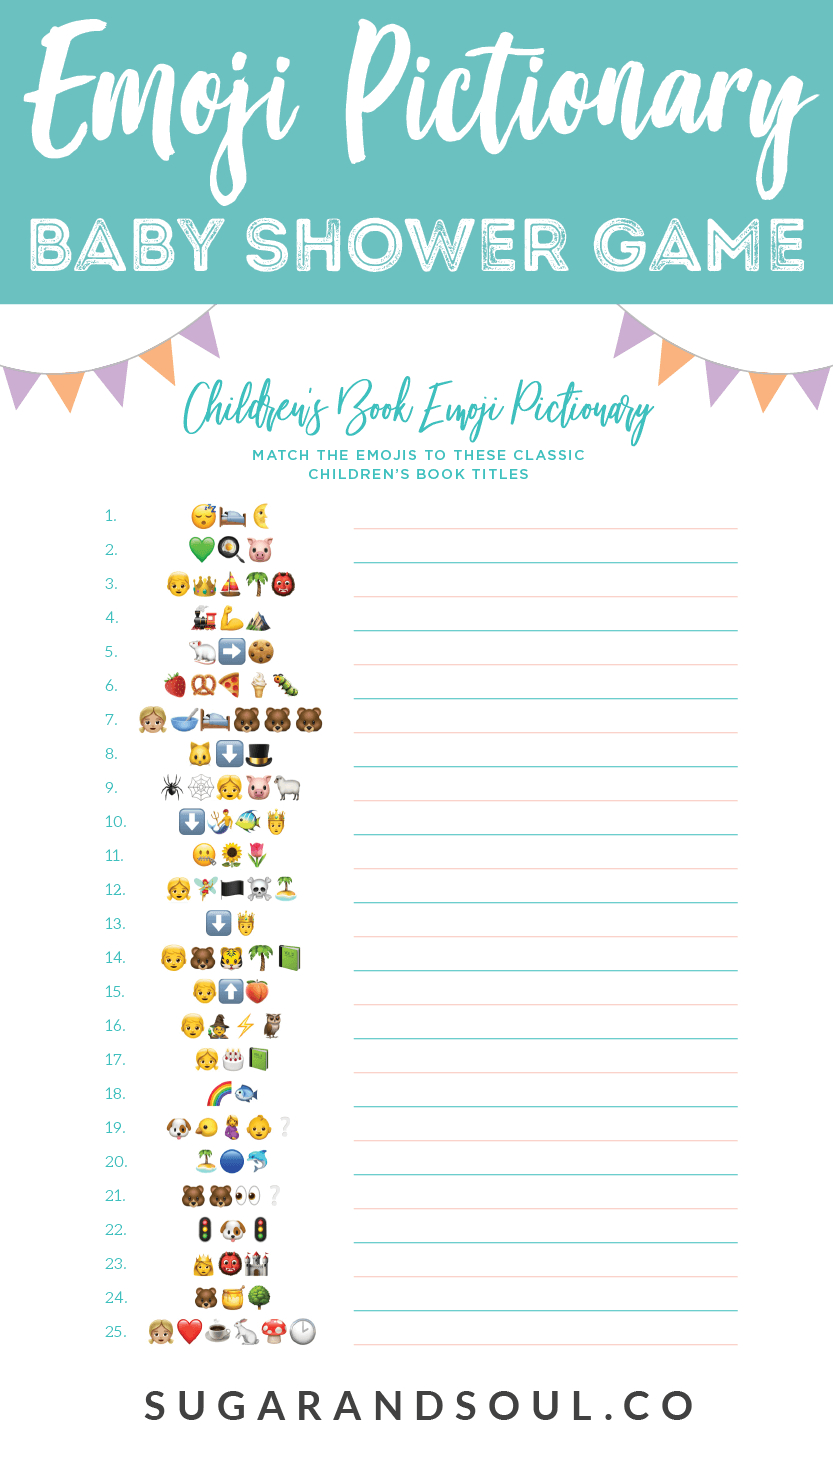 This Free Emoji Pictionary Baby Shower Game Printable Uses Emoji - Baby Invitations Printable Free